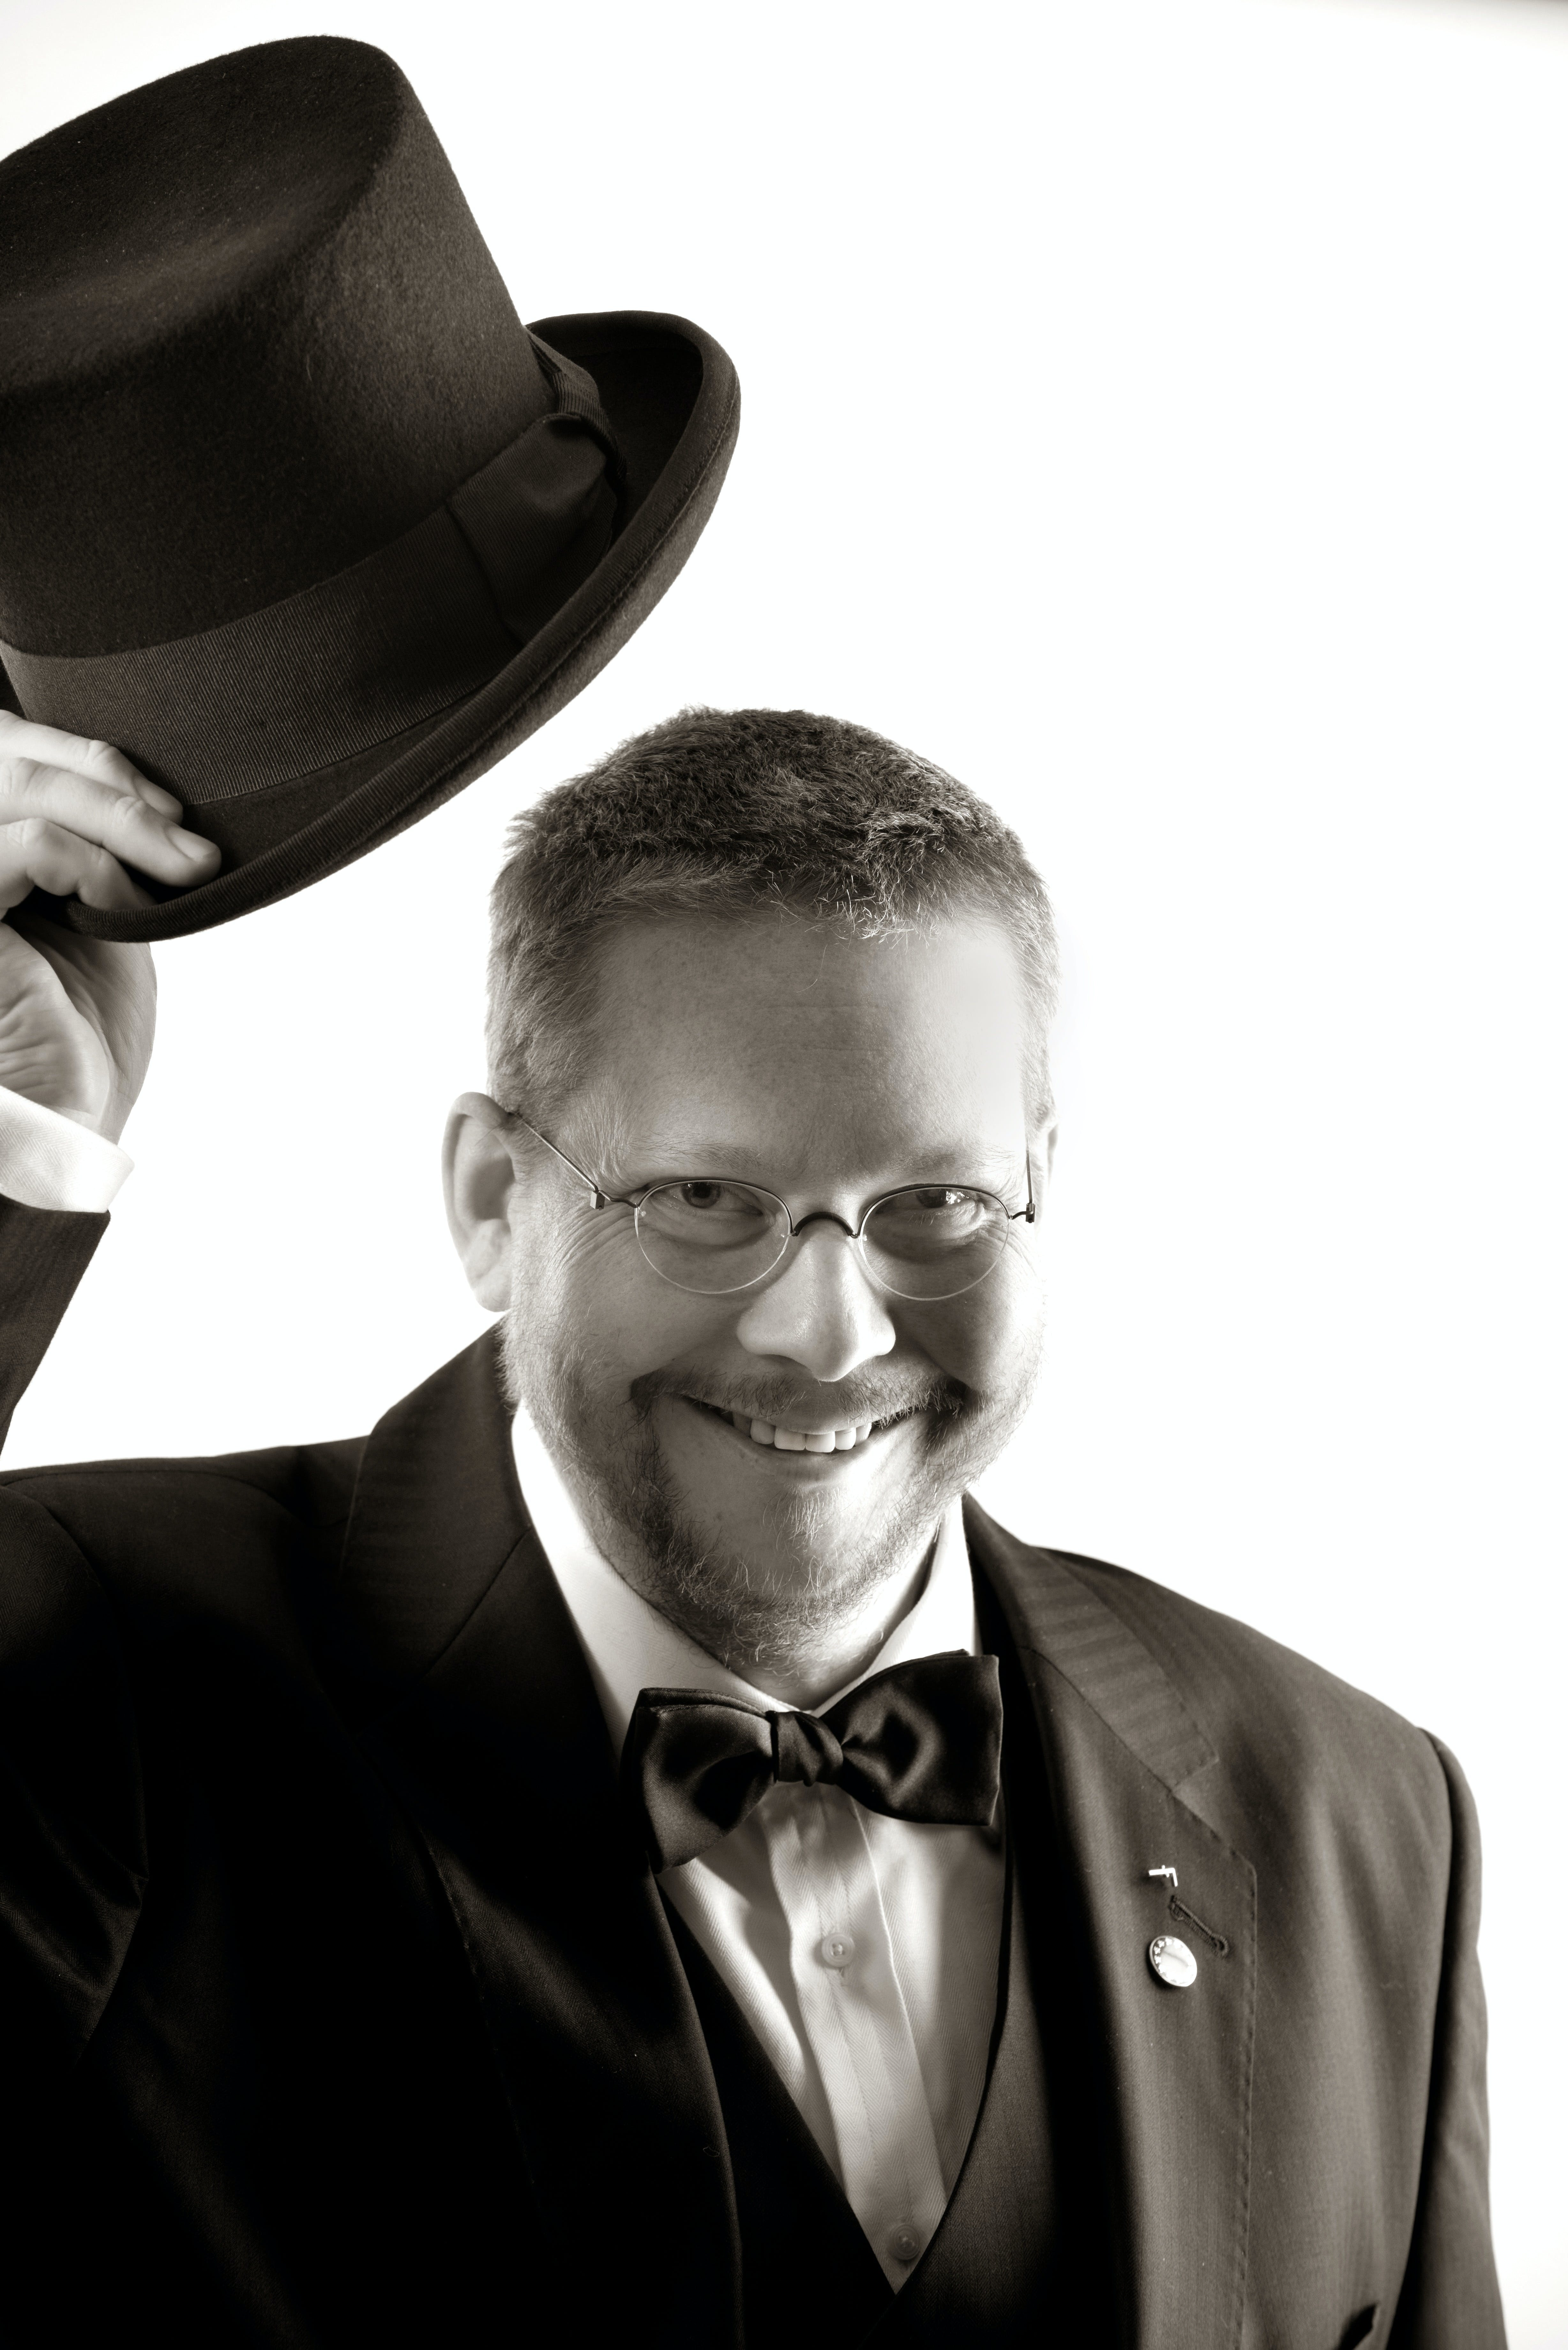 Man in Tuxedo and Eyeglasses Holding Top Hat in Grayscale